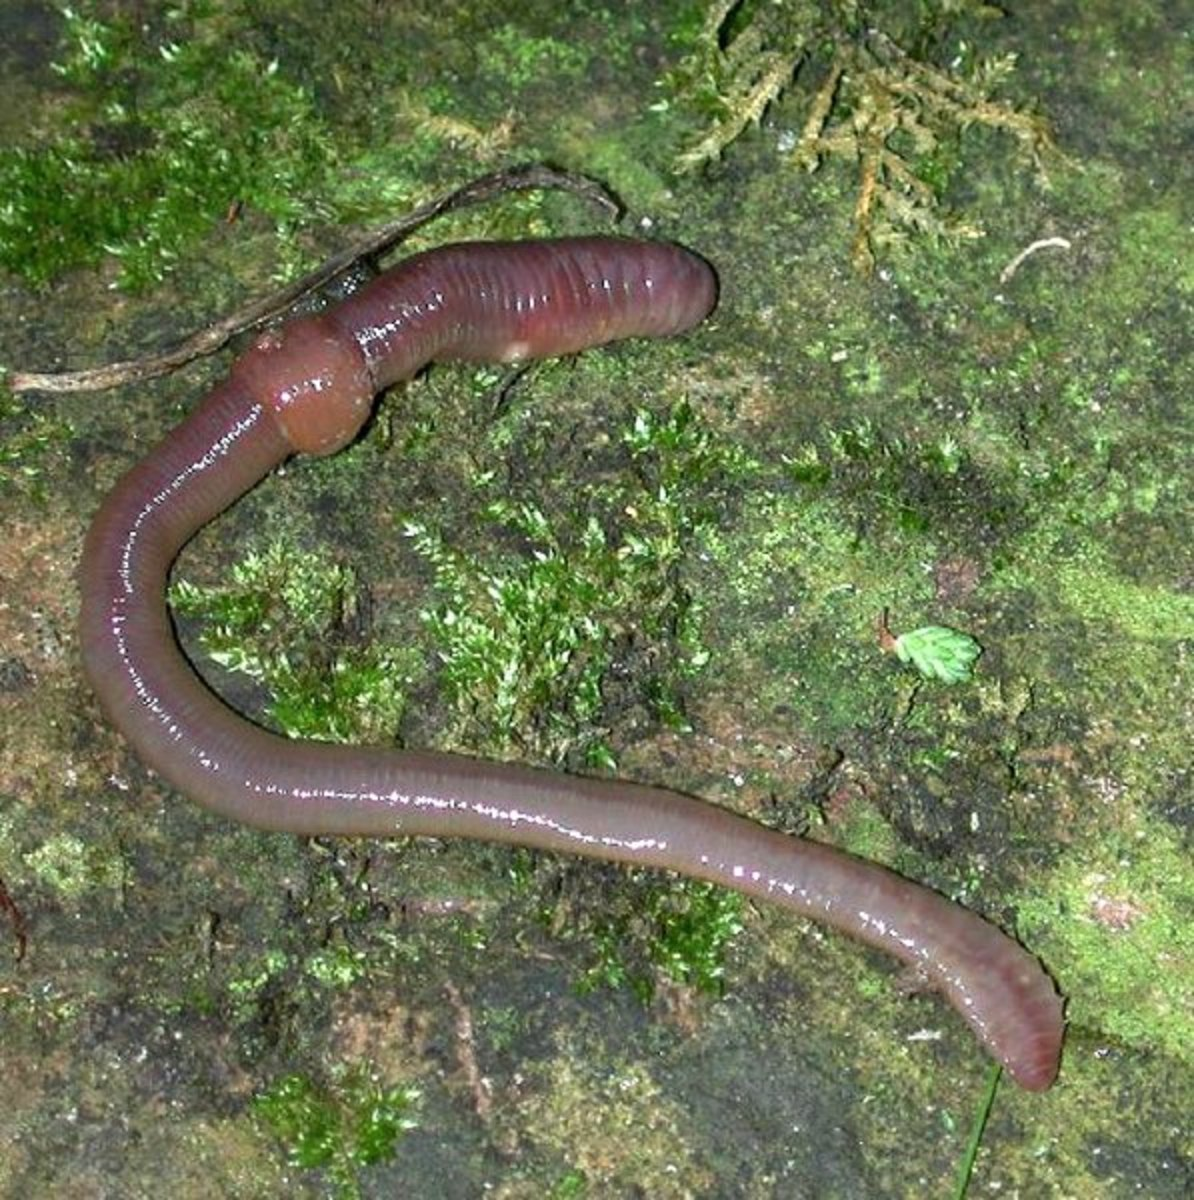 Invertebrate Animals: Earthworm